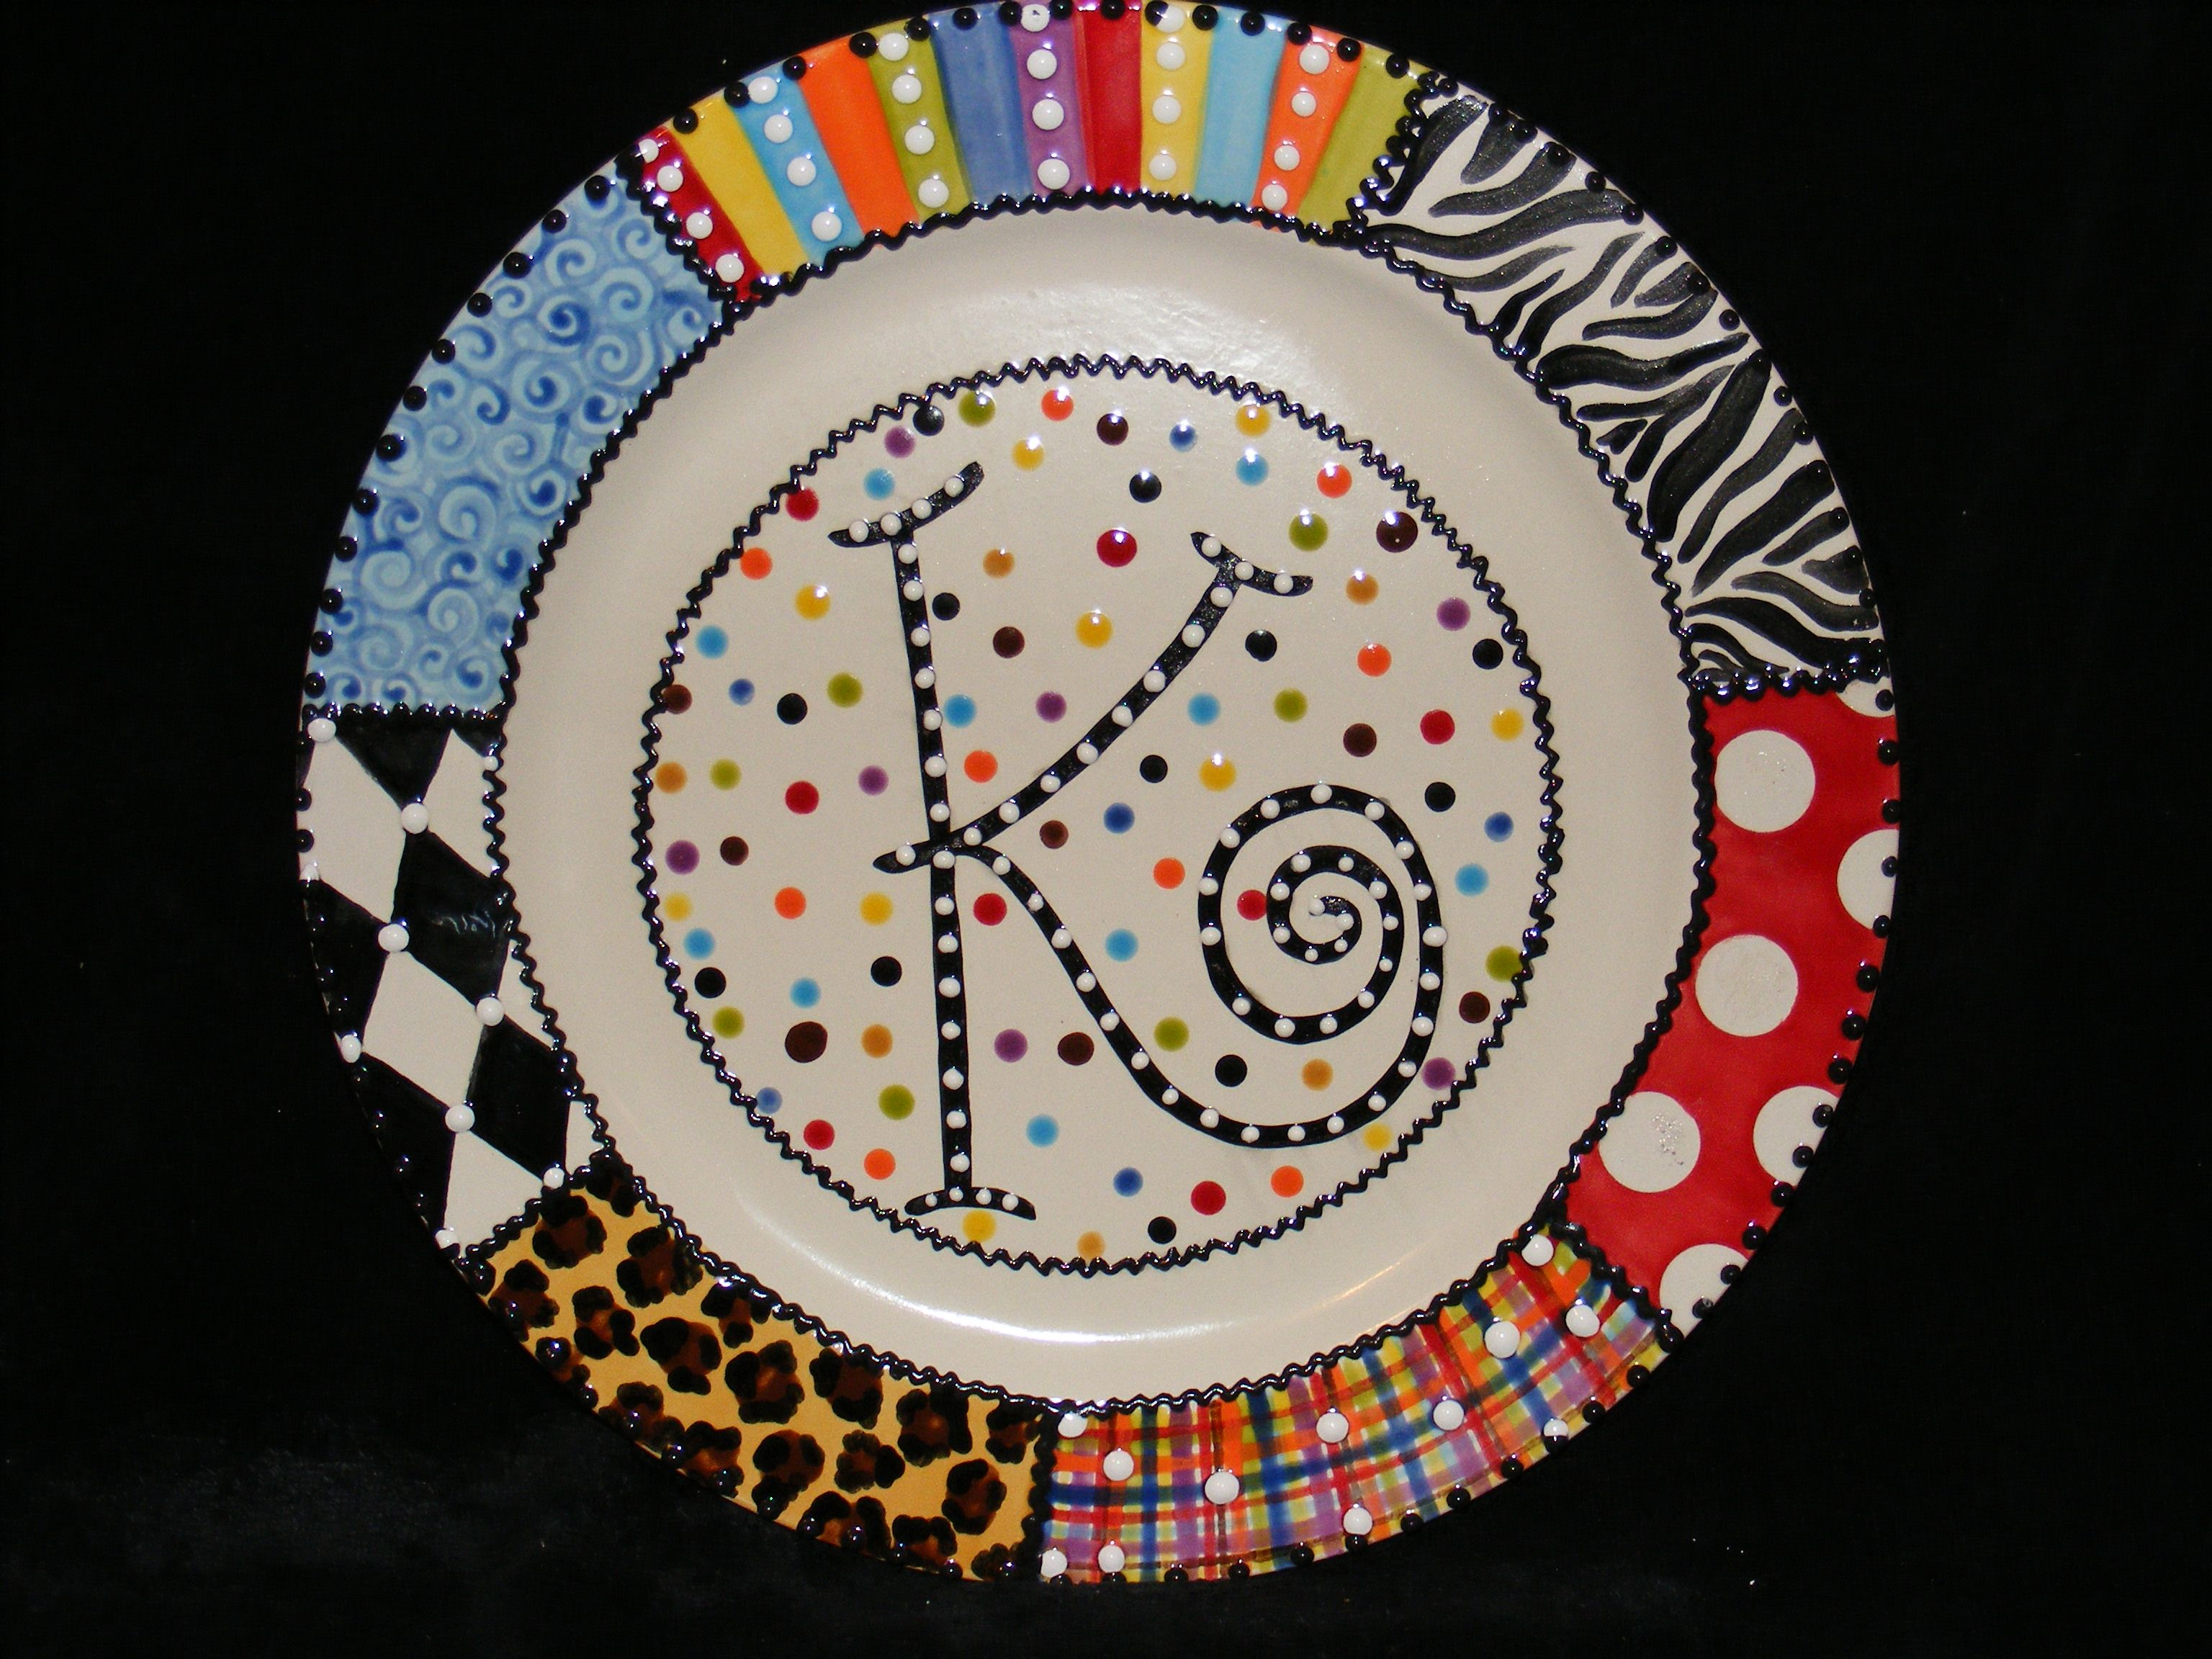 Monograms creative pottery painting ideas pinterest for Diy ceramic plates